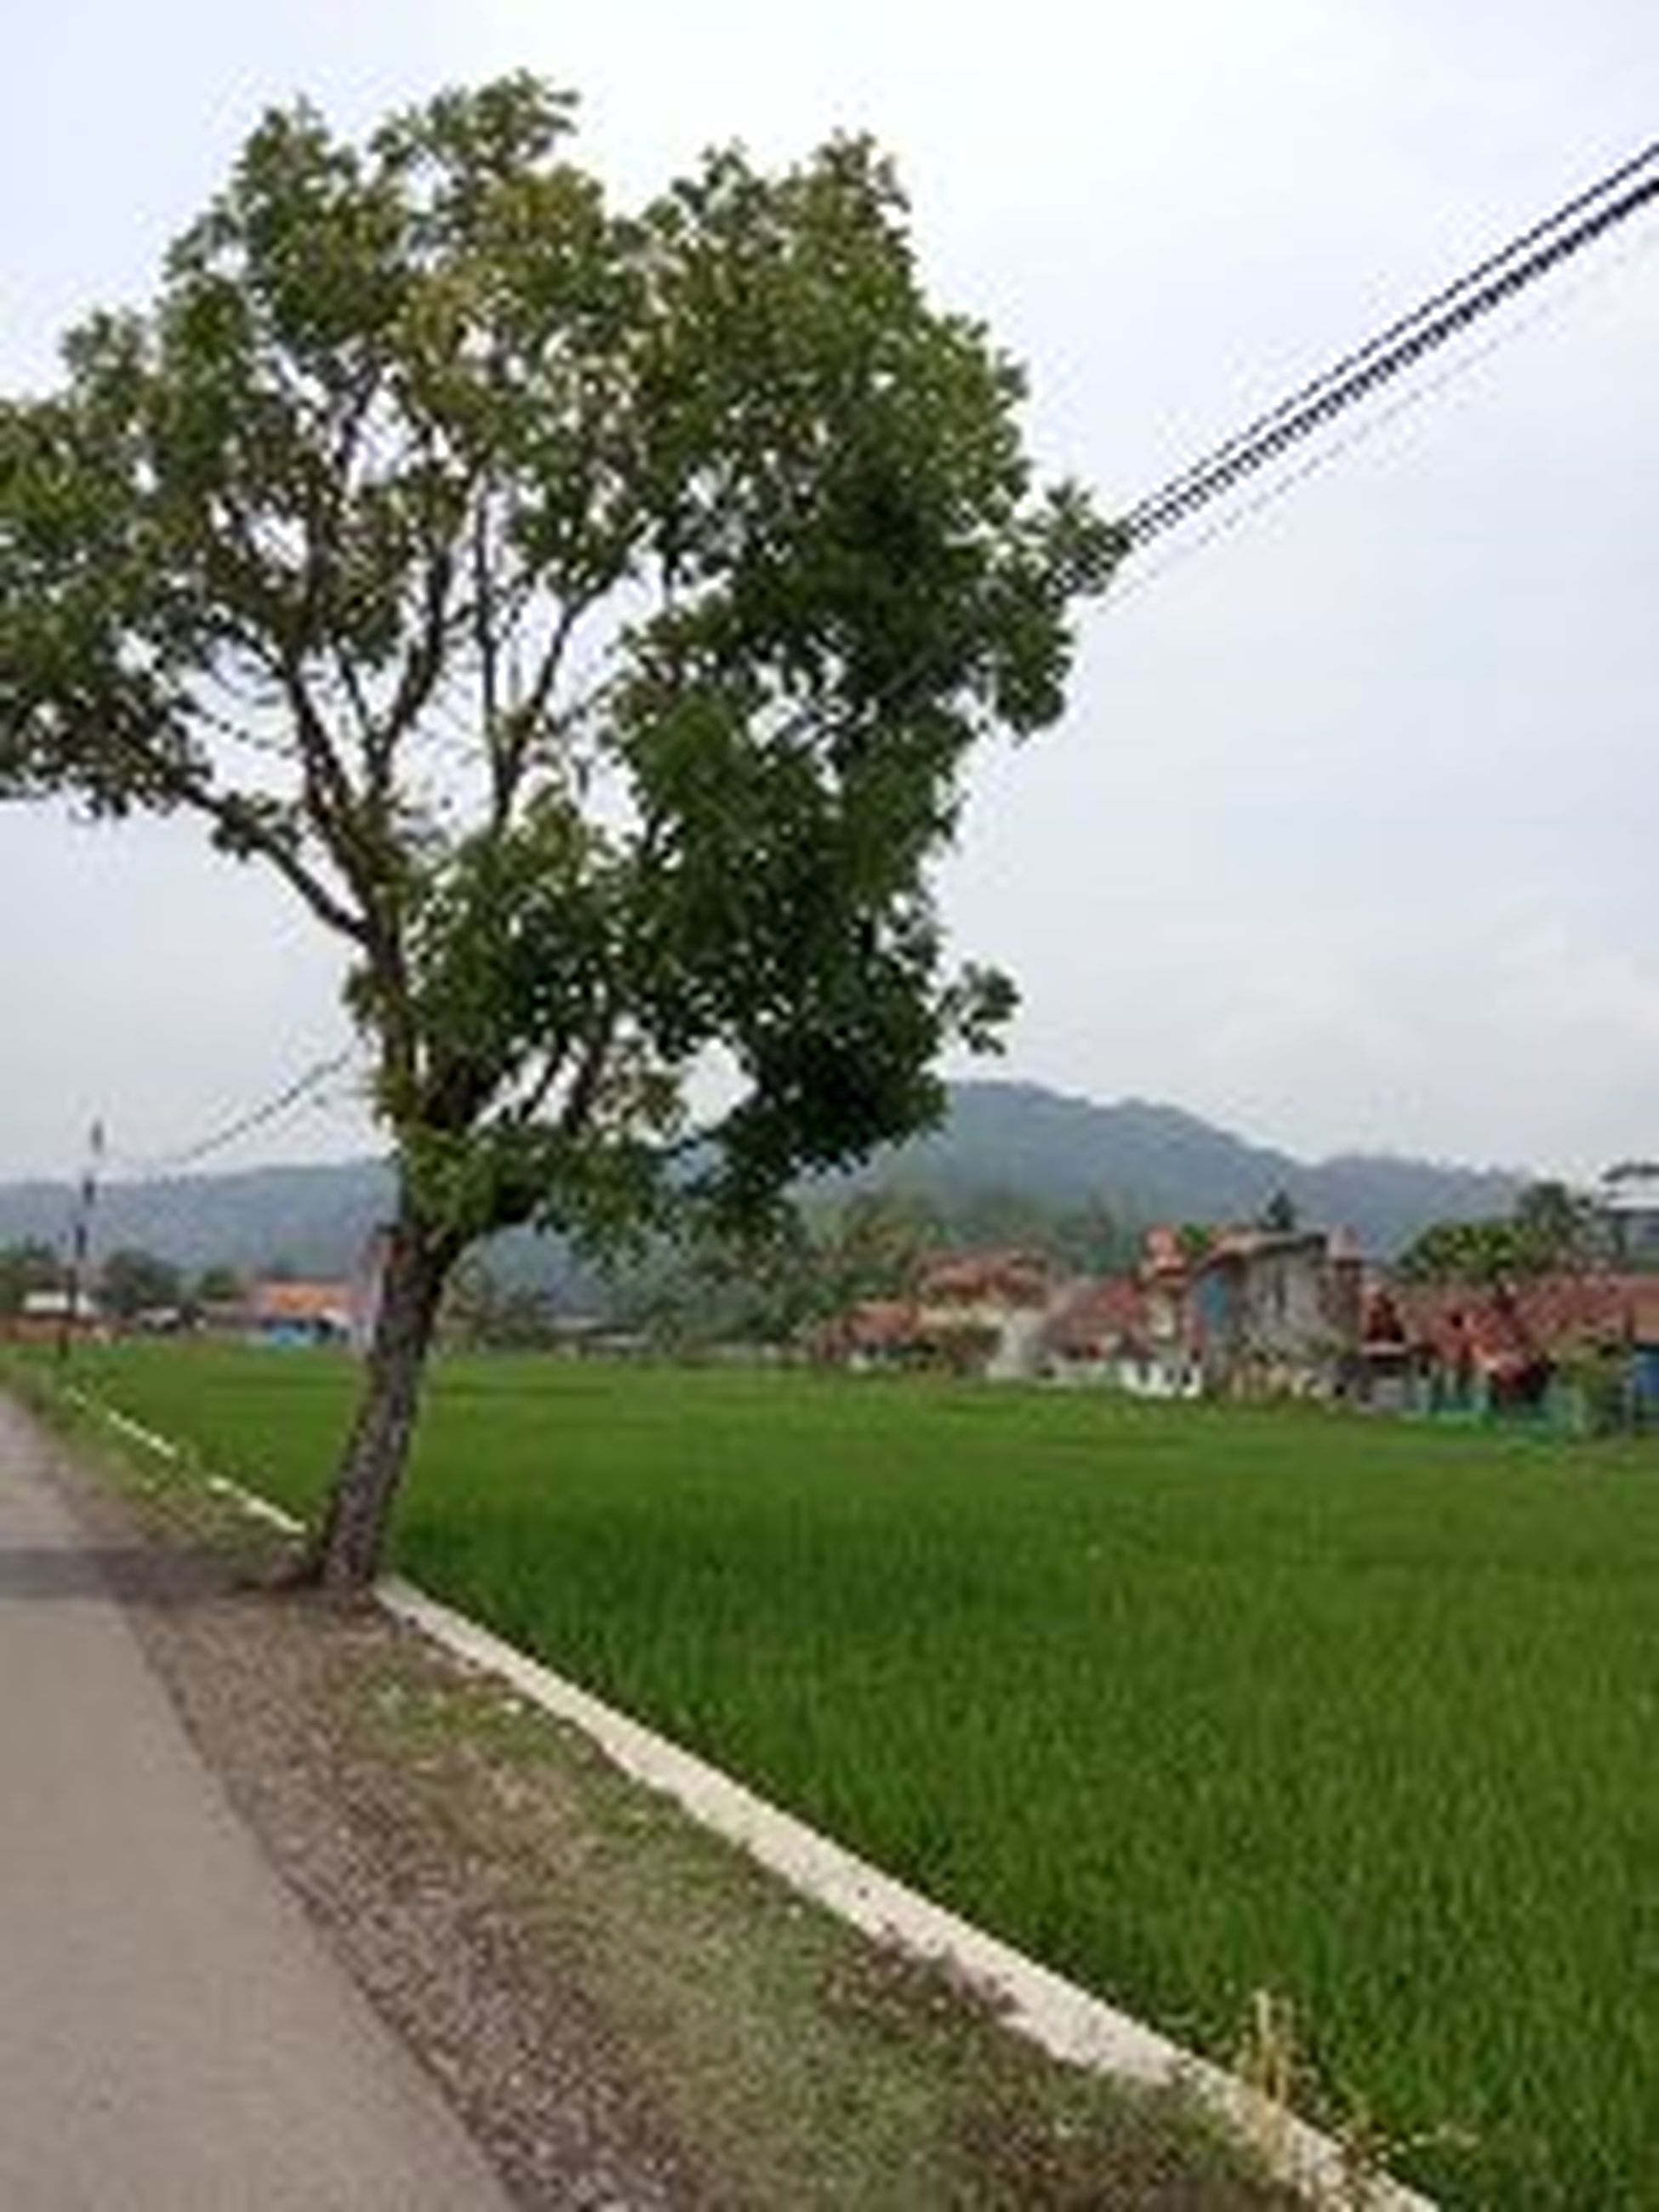 plant, tree, nature, sky, landscape, grass, agriculture, land, architecture, rural scene, road, environment, field, city, building exterior, building, no people, outdoors, built structure, growth